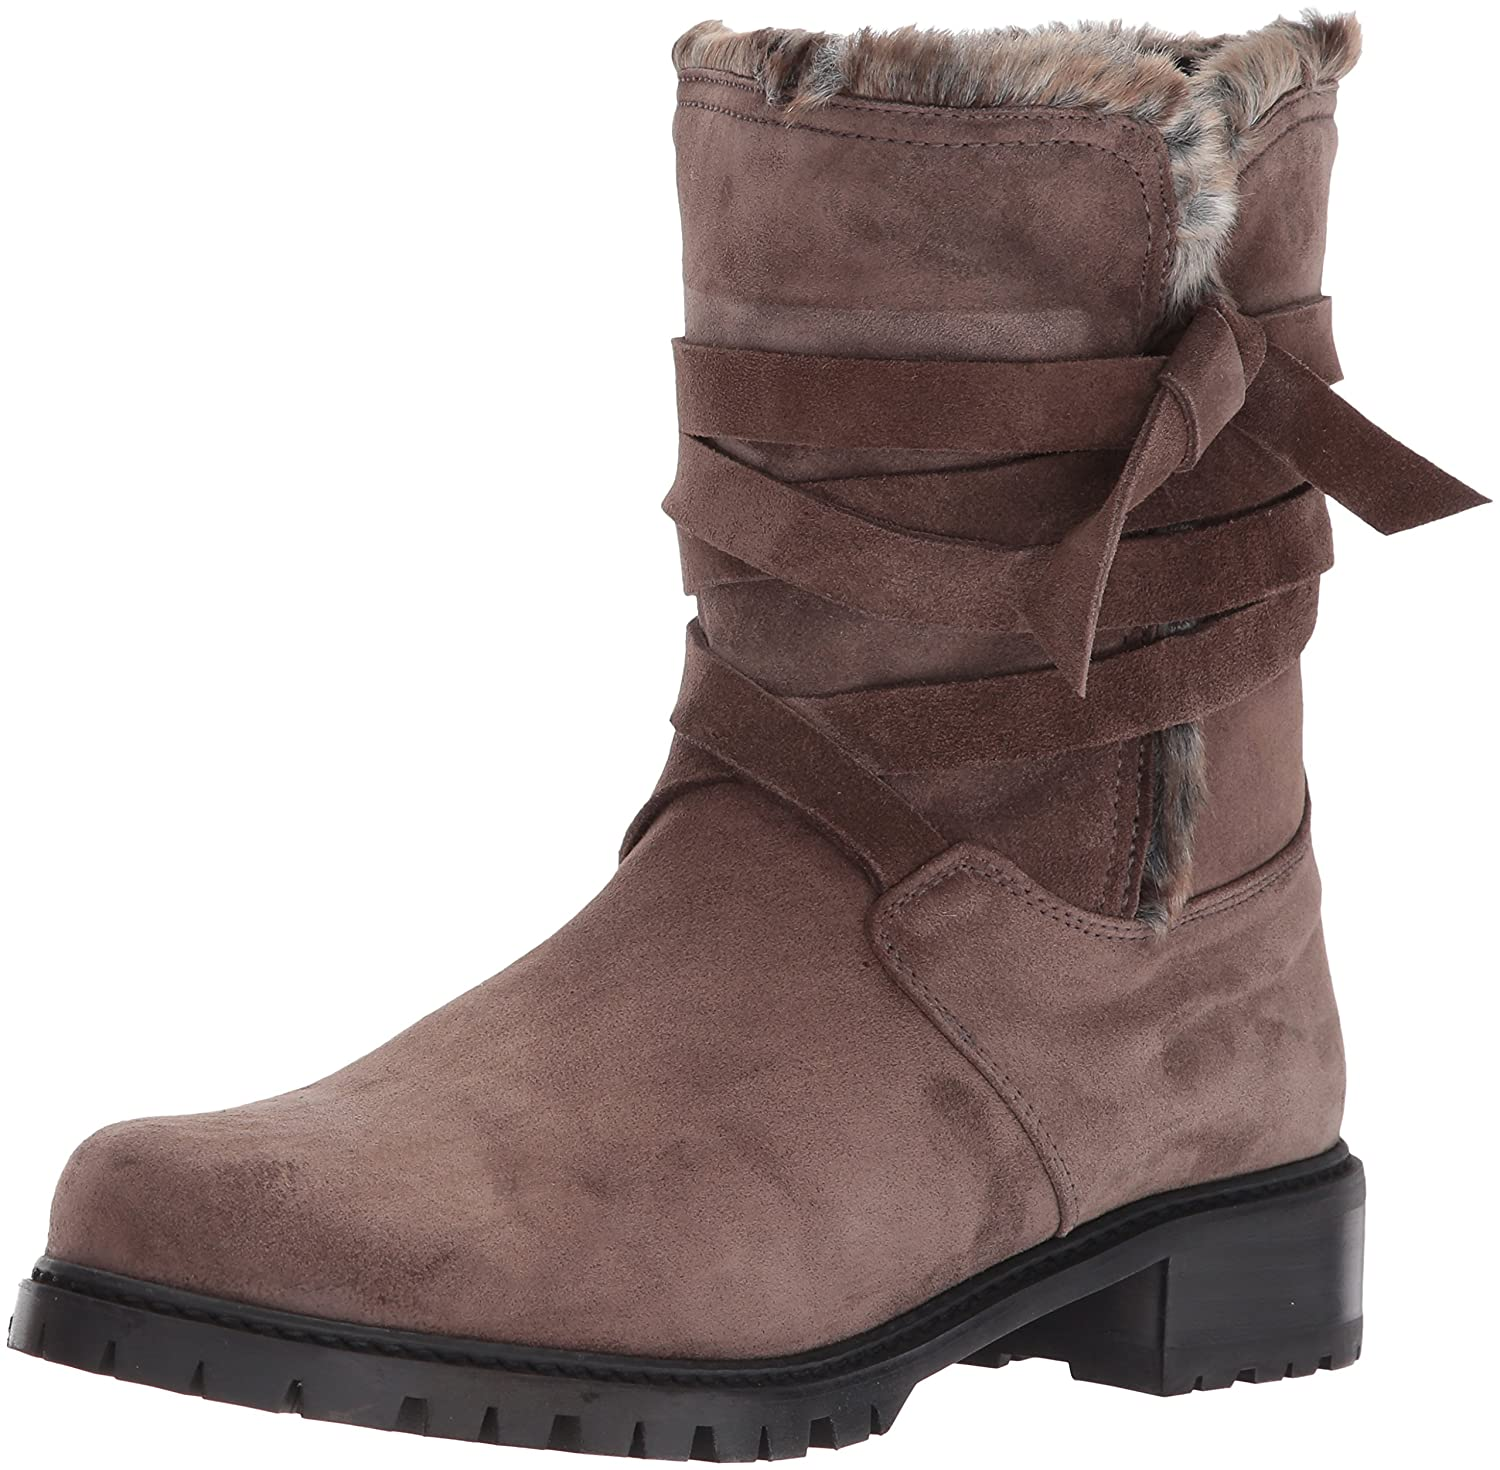 Stuart Weitzman Women's Snowfield Mid Calf Boot B06W2HLR7F 8 B(M) US|Seal